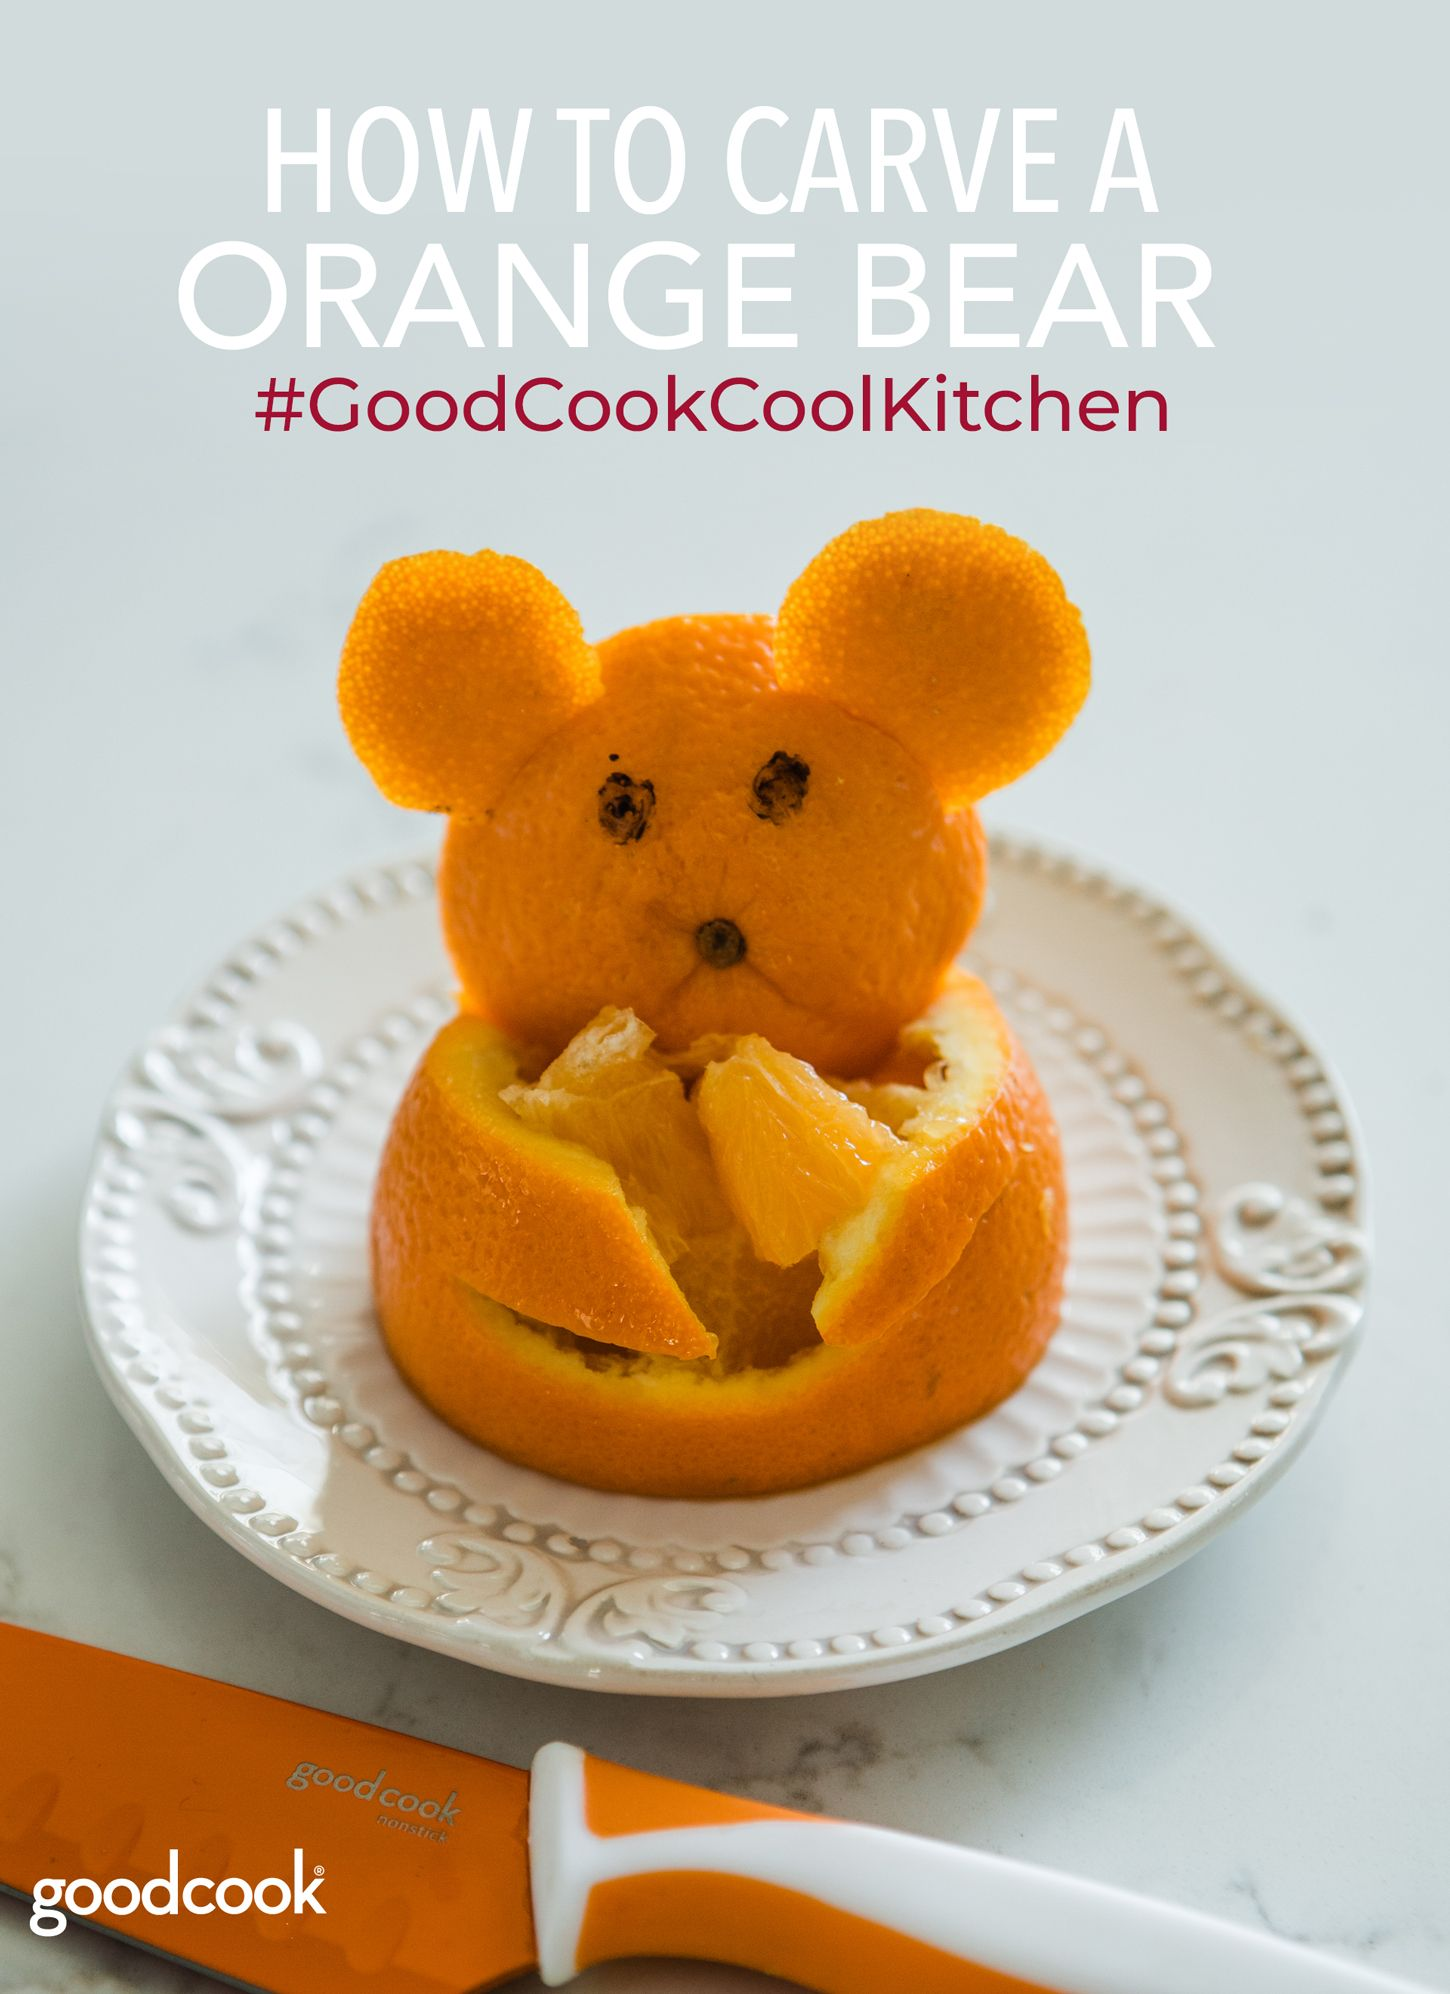 Show Off Your Knife Skills with This Orange Bear